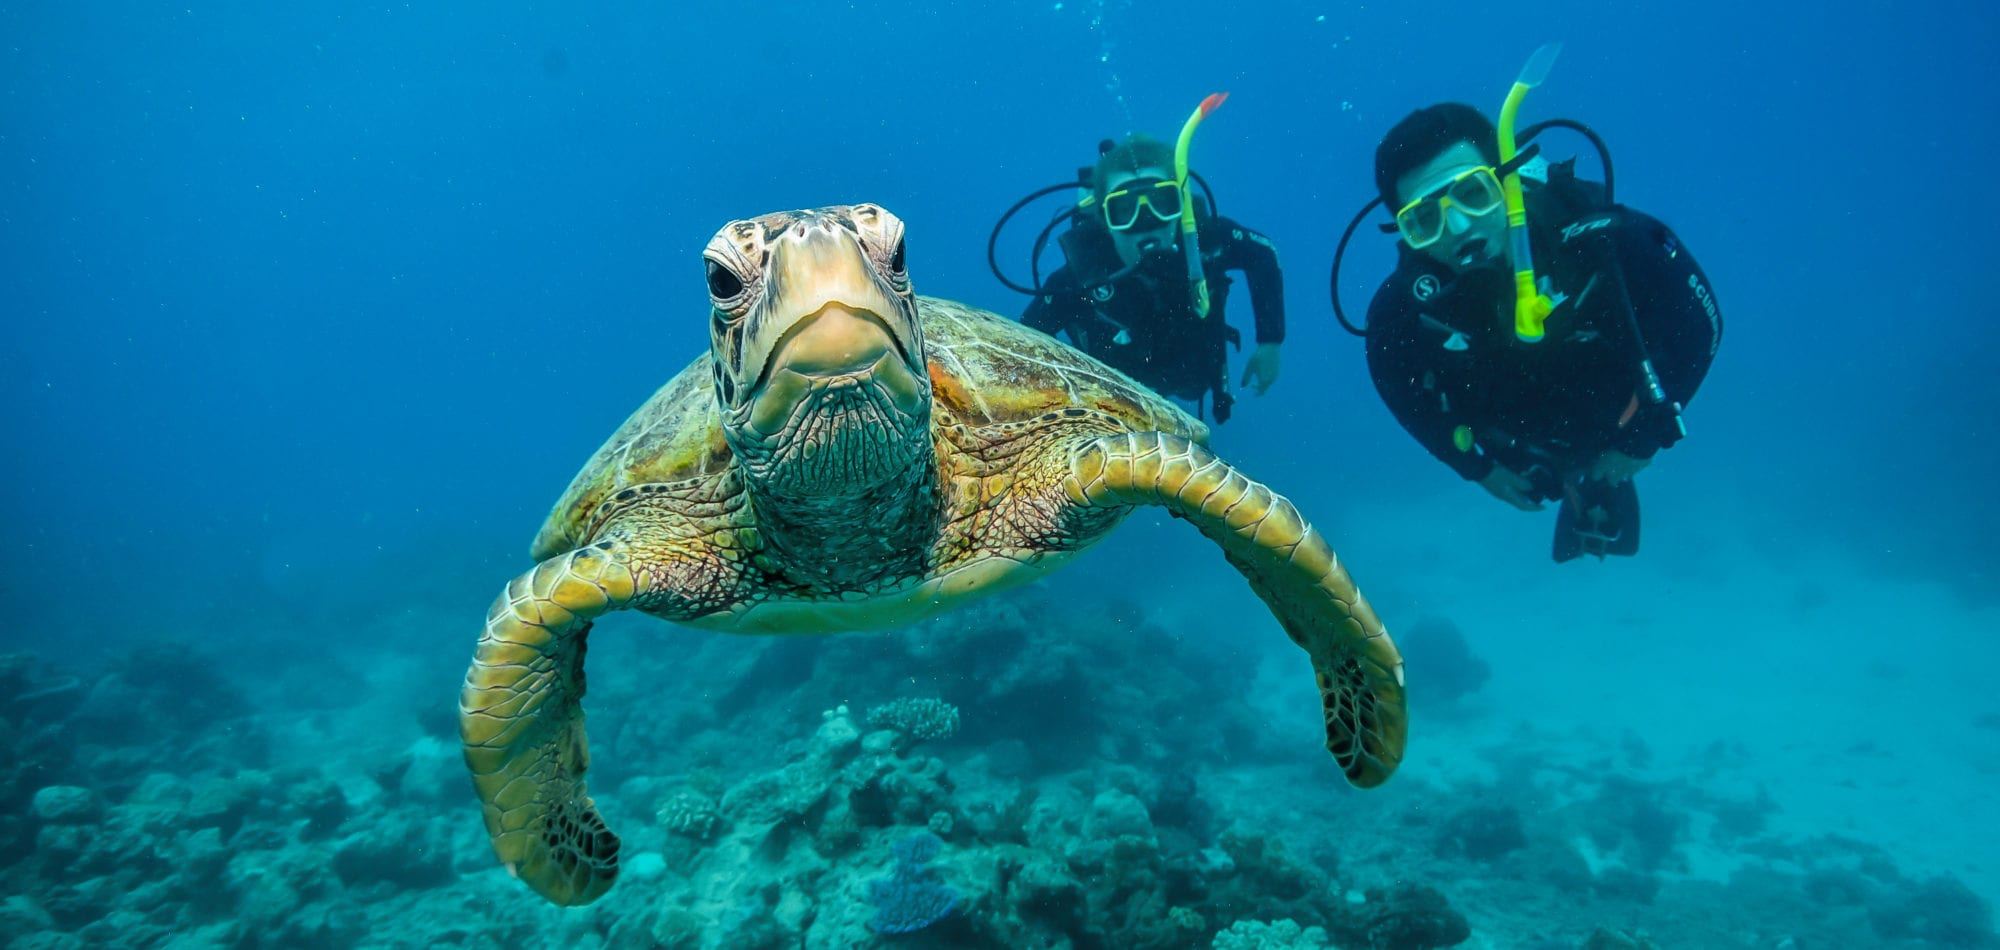 Cairns, learn to scuba dive - divers photographed with a turtle on the Great Barrier Reef